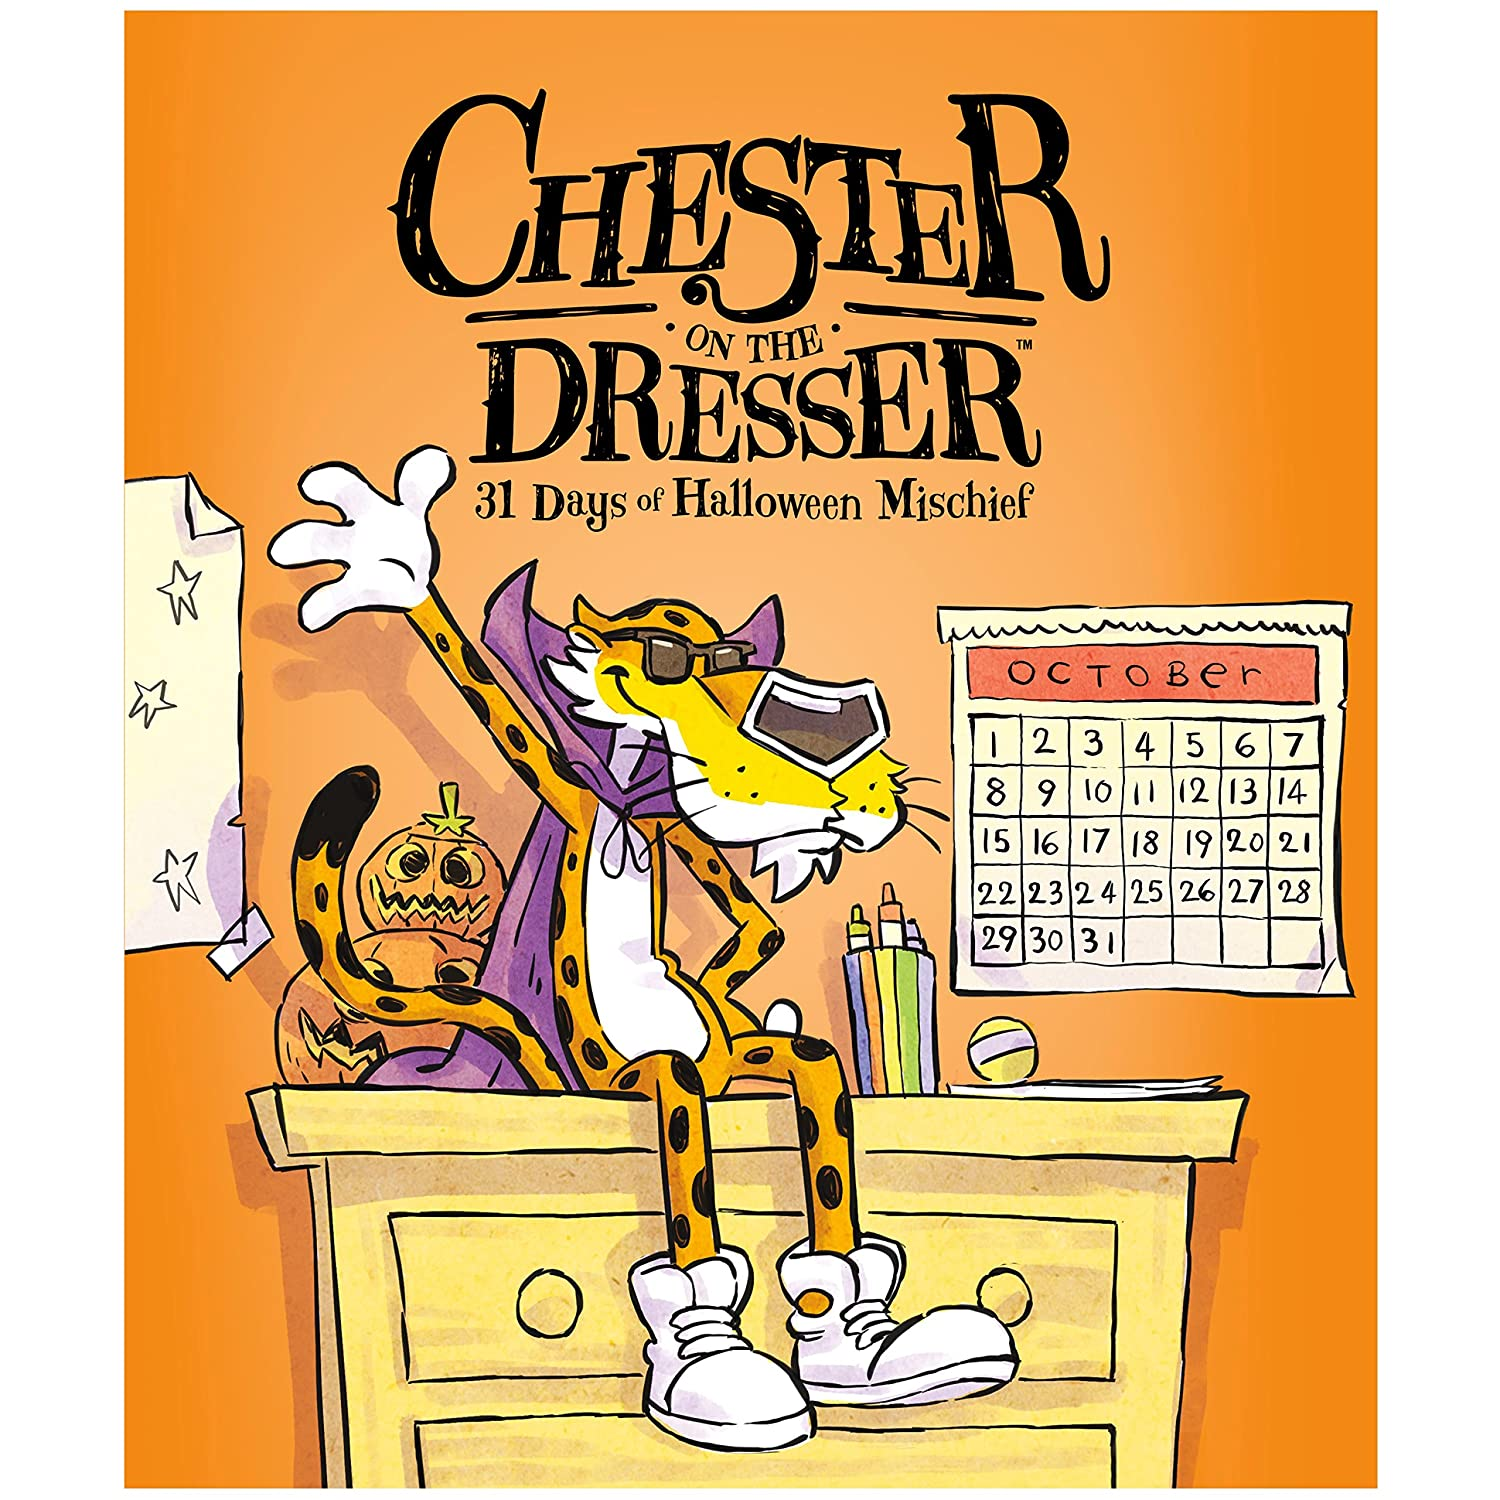 590c9fcf6ae1 Cheetos Chester On The Dresser Halloween Book with Chester Cheetah Stuffed  Animal  Amazon.com  Grocery   Gourmet Food